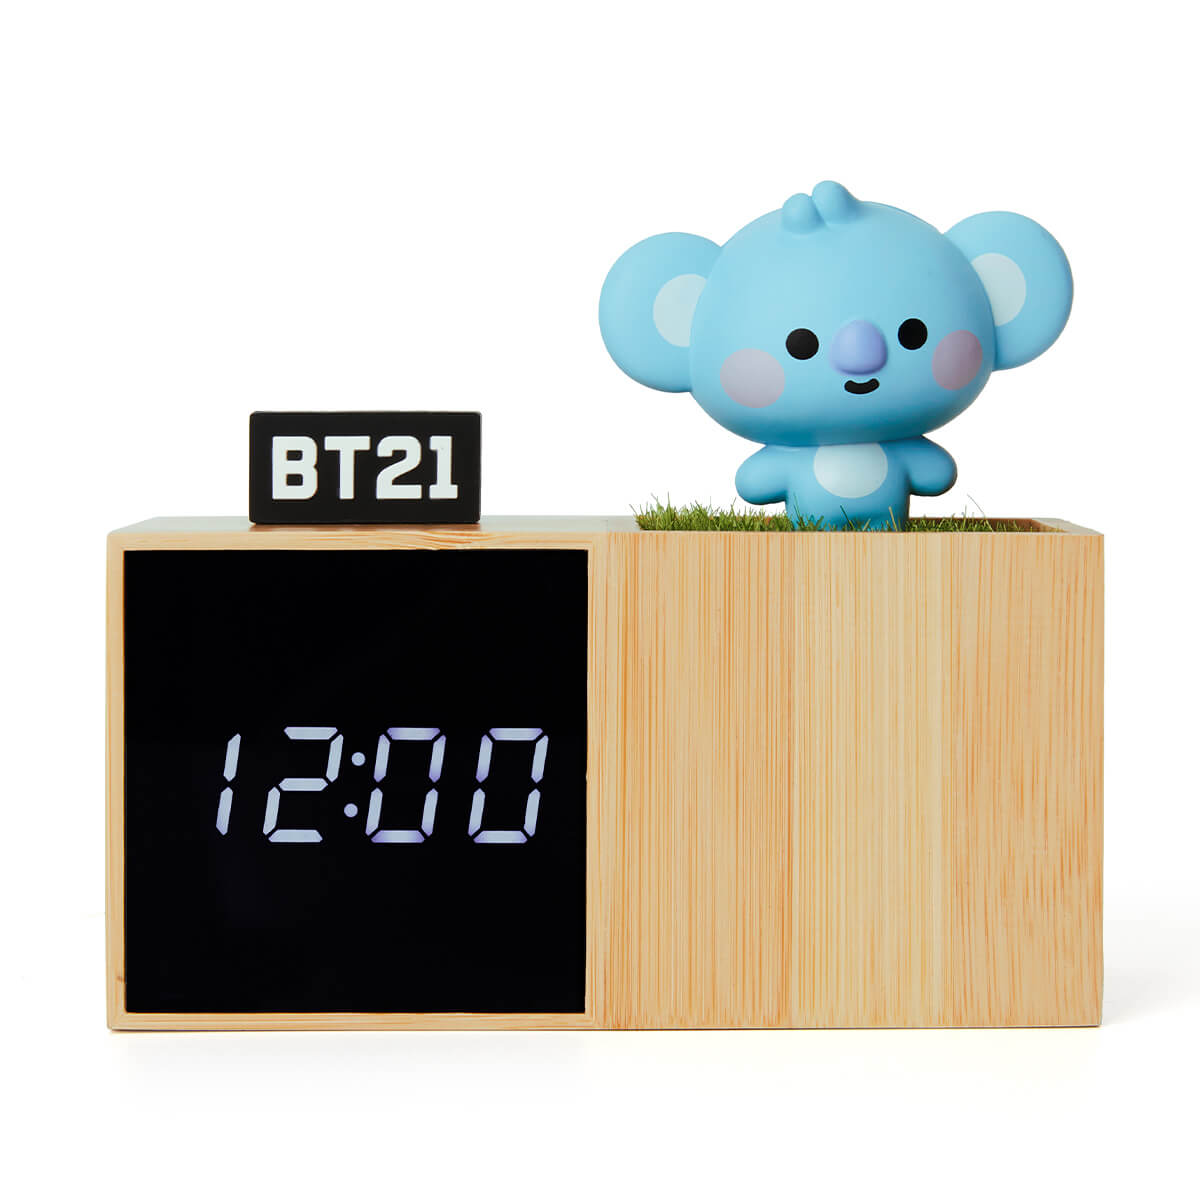 BT21 KOYA BABY Digital Desk Clock